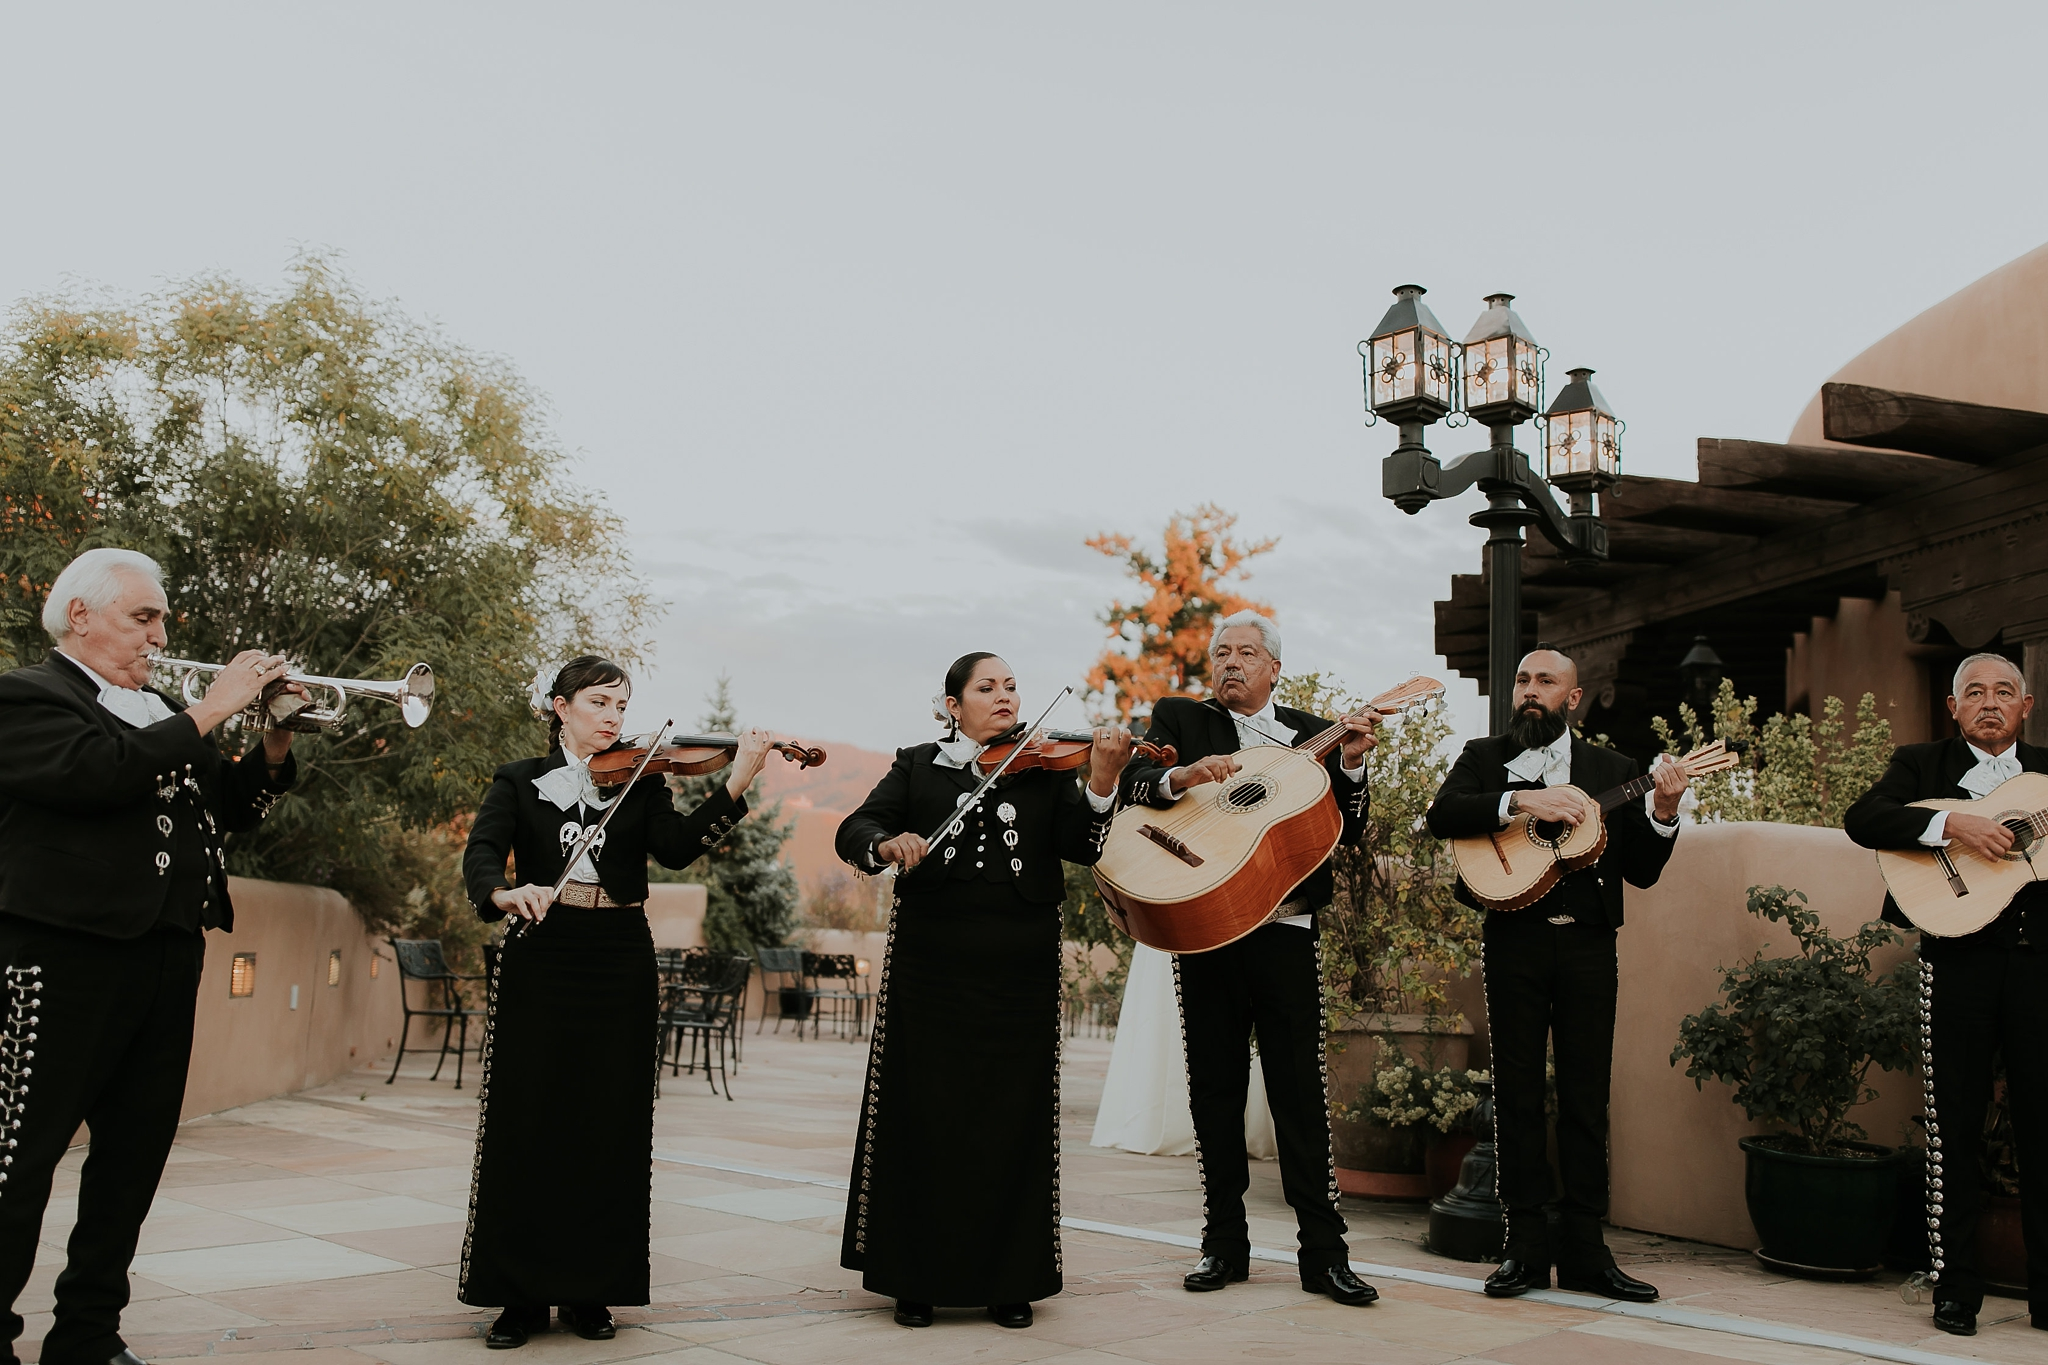 Alicia+lucia+photography+-+albuquerque+wedding+photographer+-+santa+fe+wedding+photography+-+new+mexico+wedding+photographer+-+new+mexico+wedding+-+engagement+-+santa+fe+wedding+-+la+fonda+on+the+plaza+-+la+fonda+wedding_0058.jpg